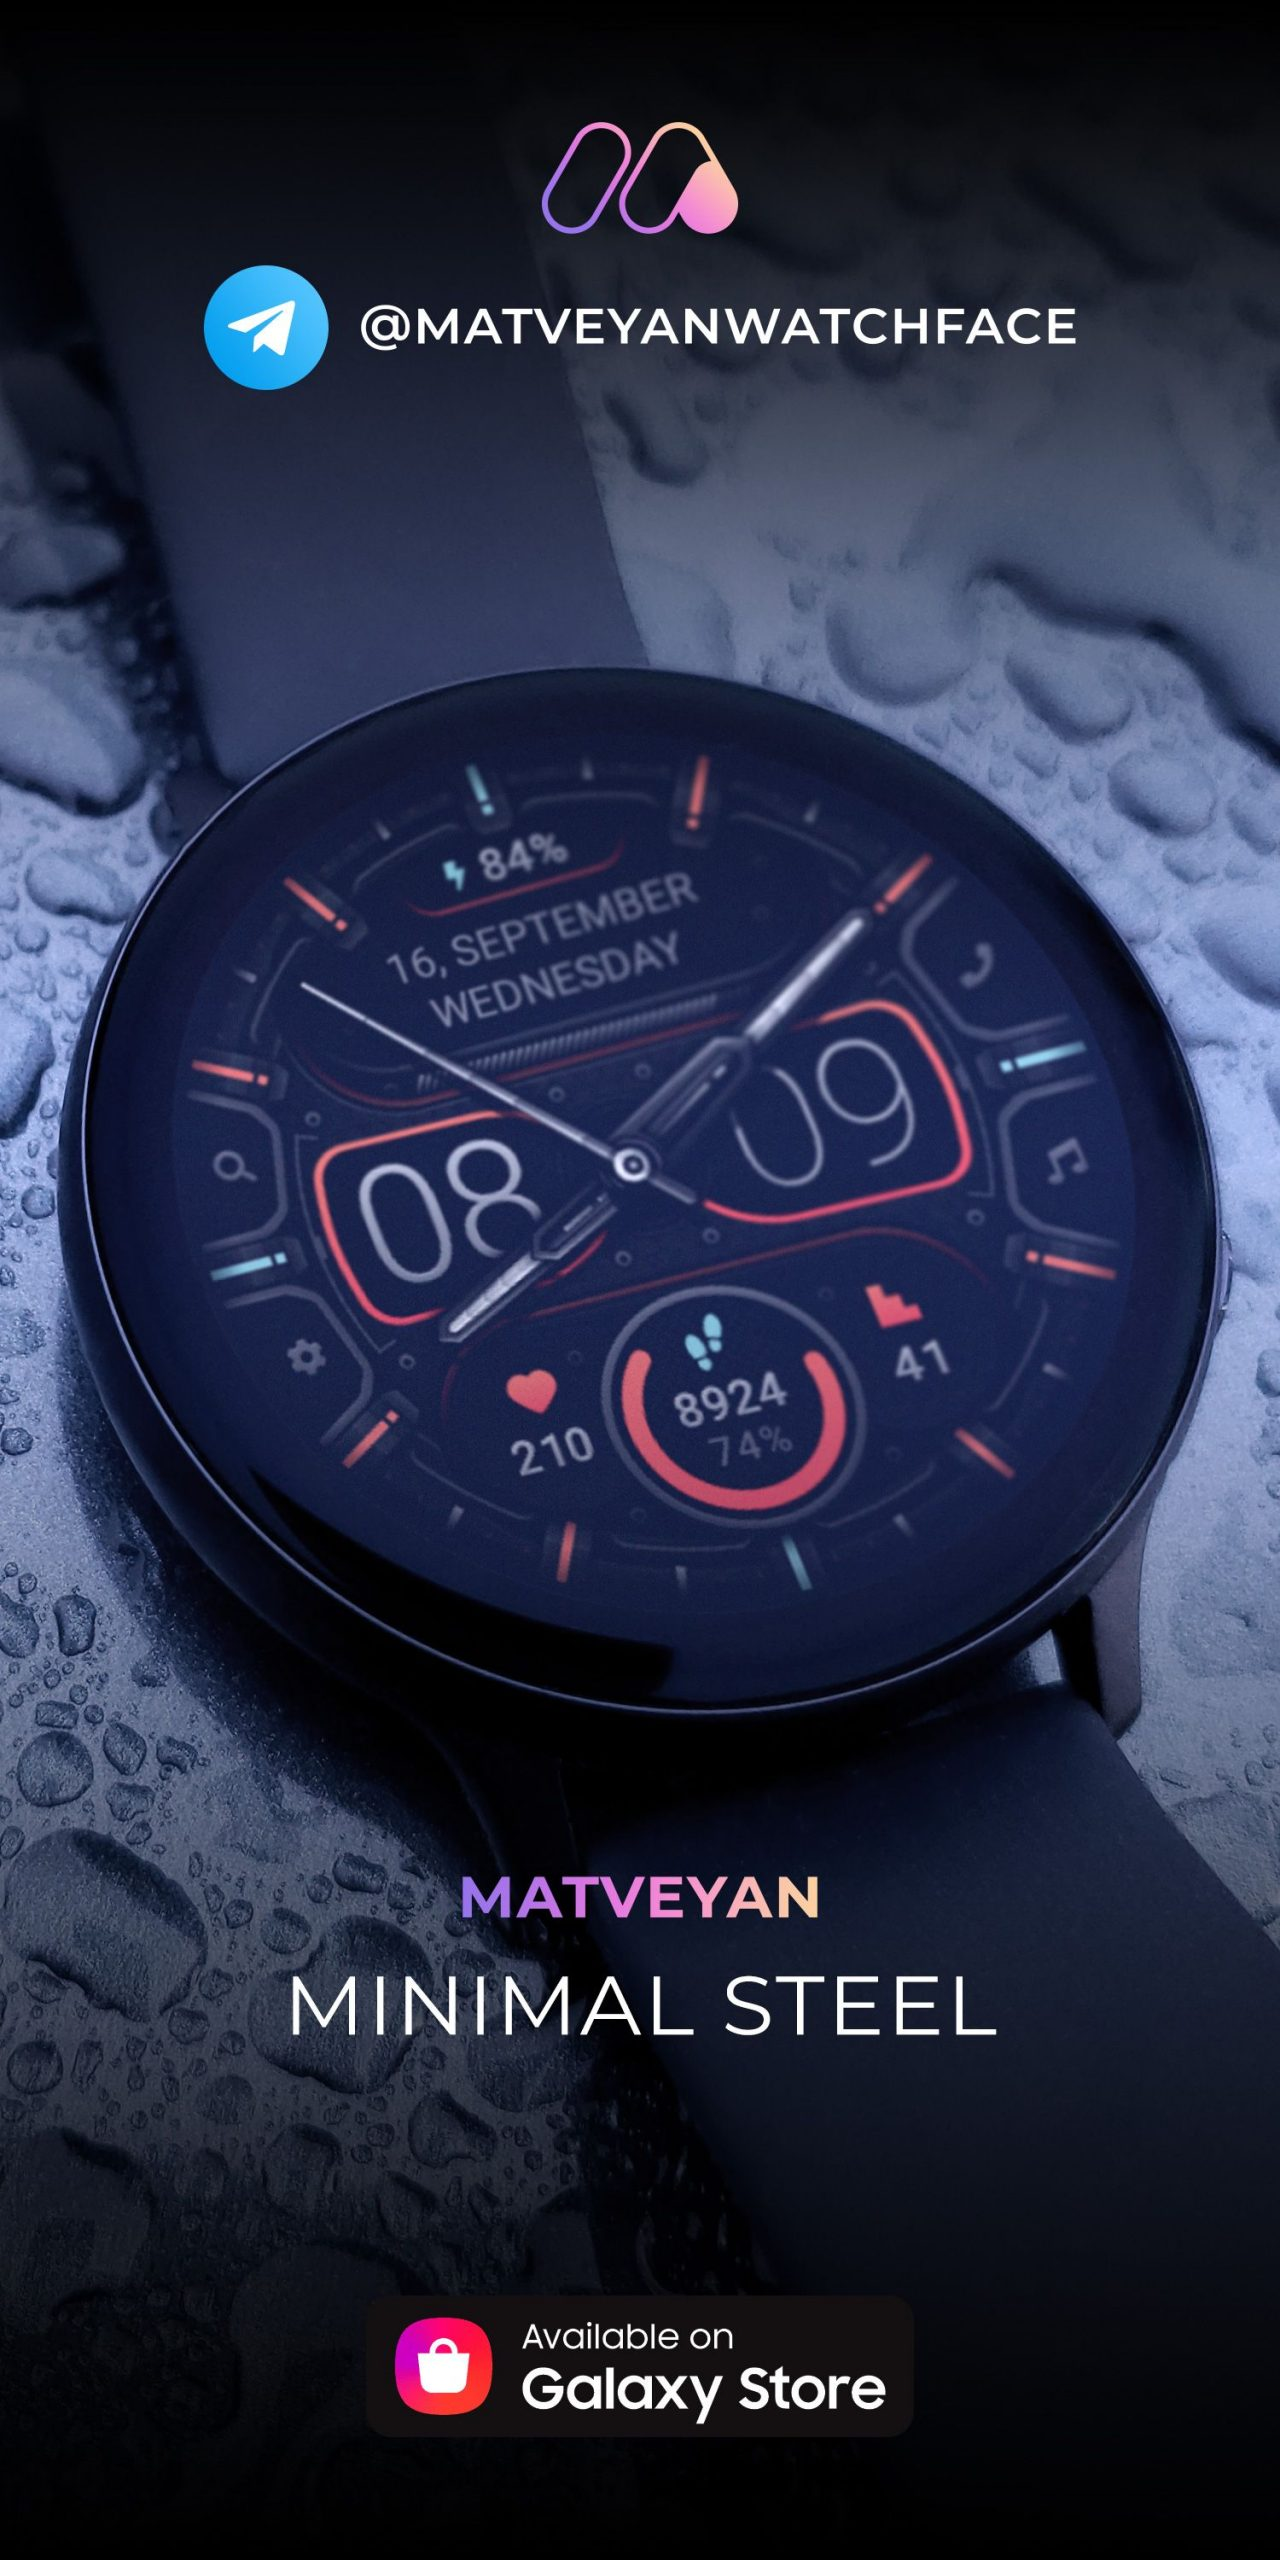 Watch Faces For Samsung Galaxy Watch